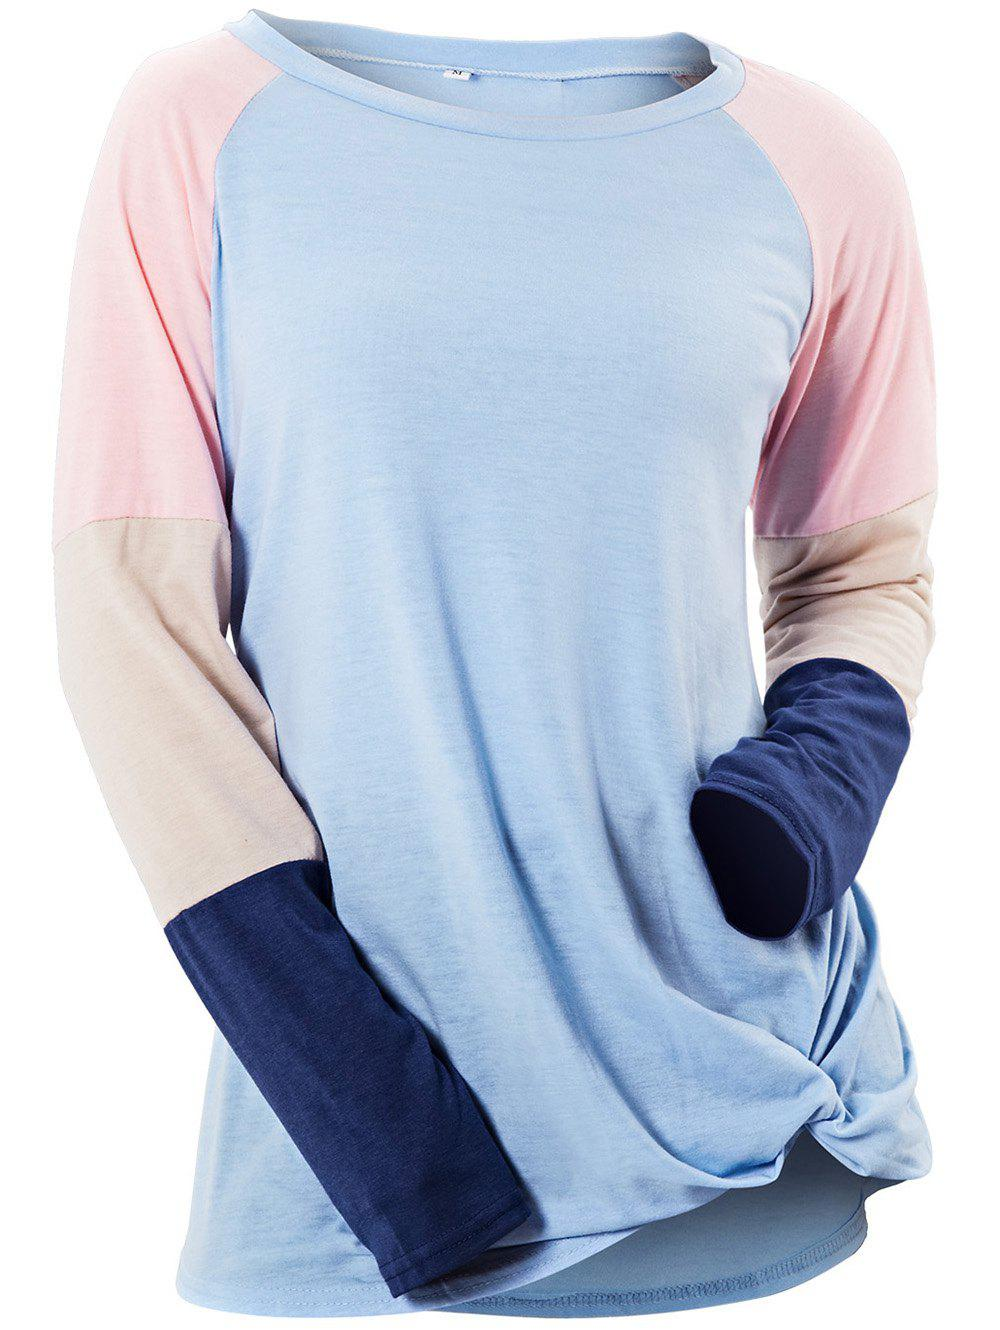 New Womens Long Sleeve Patchwork Color Block Sweatshirt Casual Tunic Top